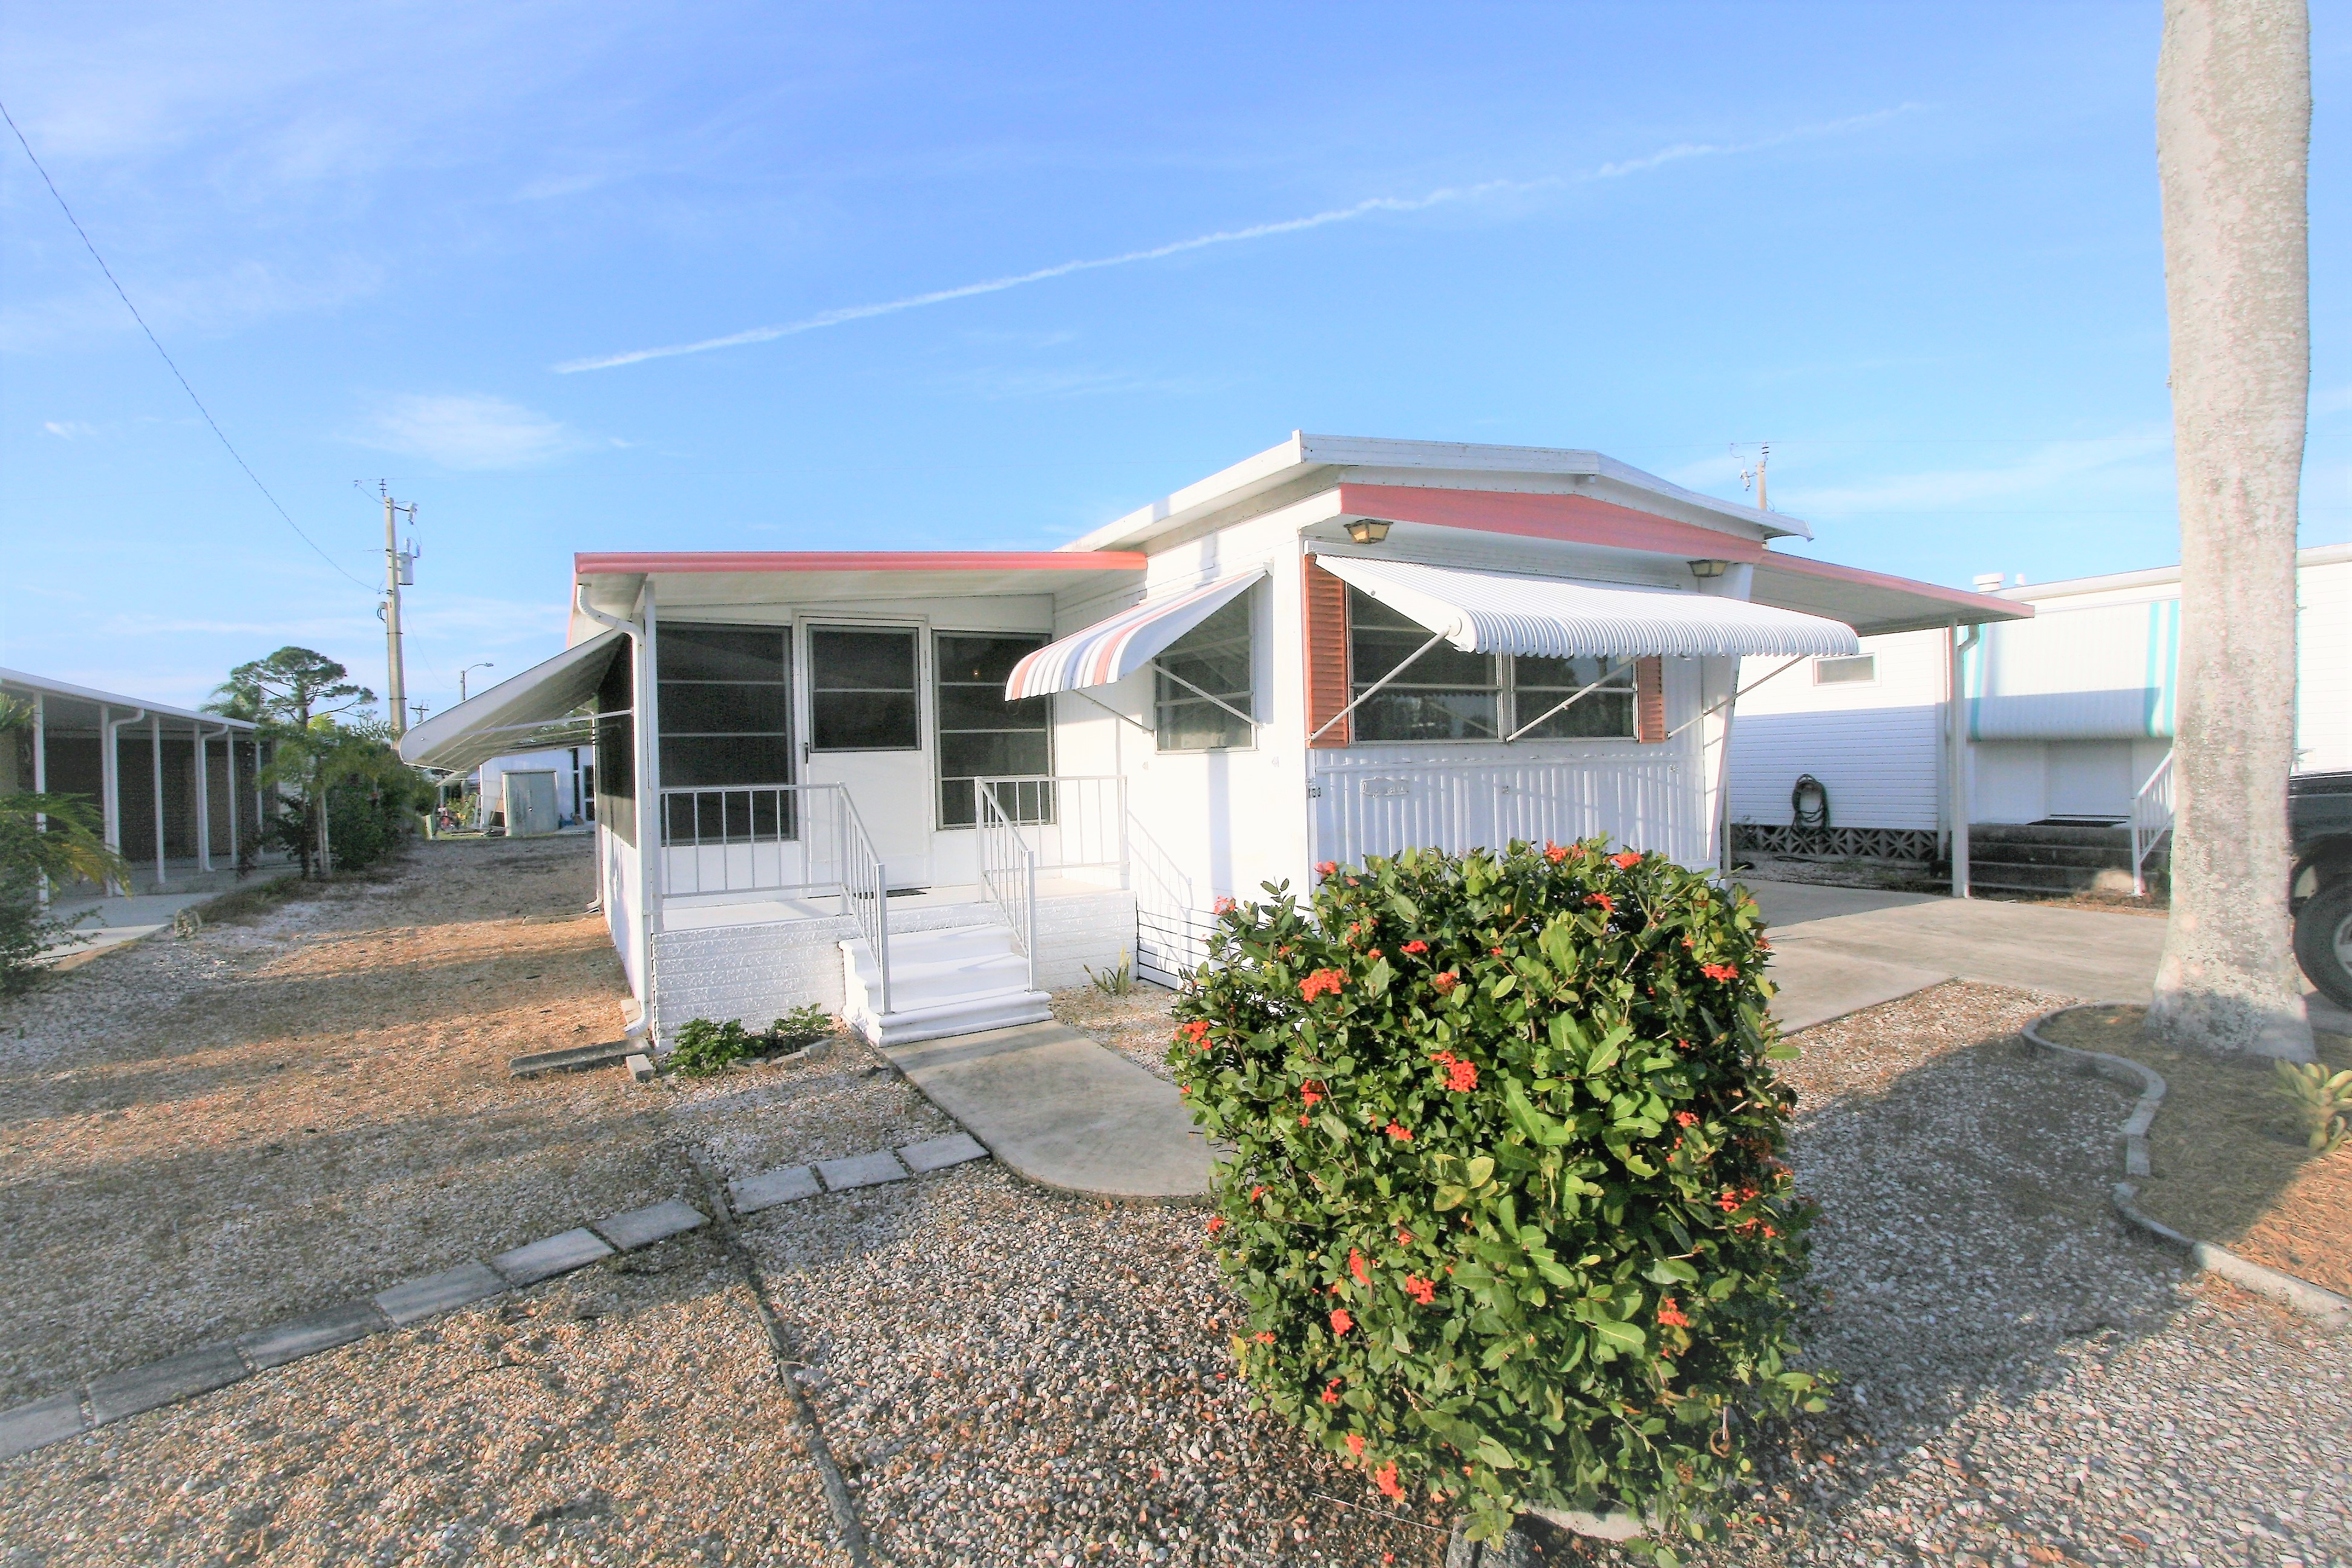 Mobile home for sale in Carriage Village (this one sold!)